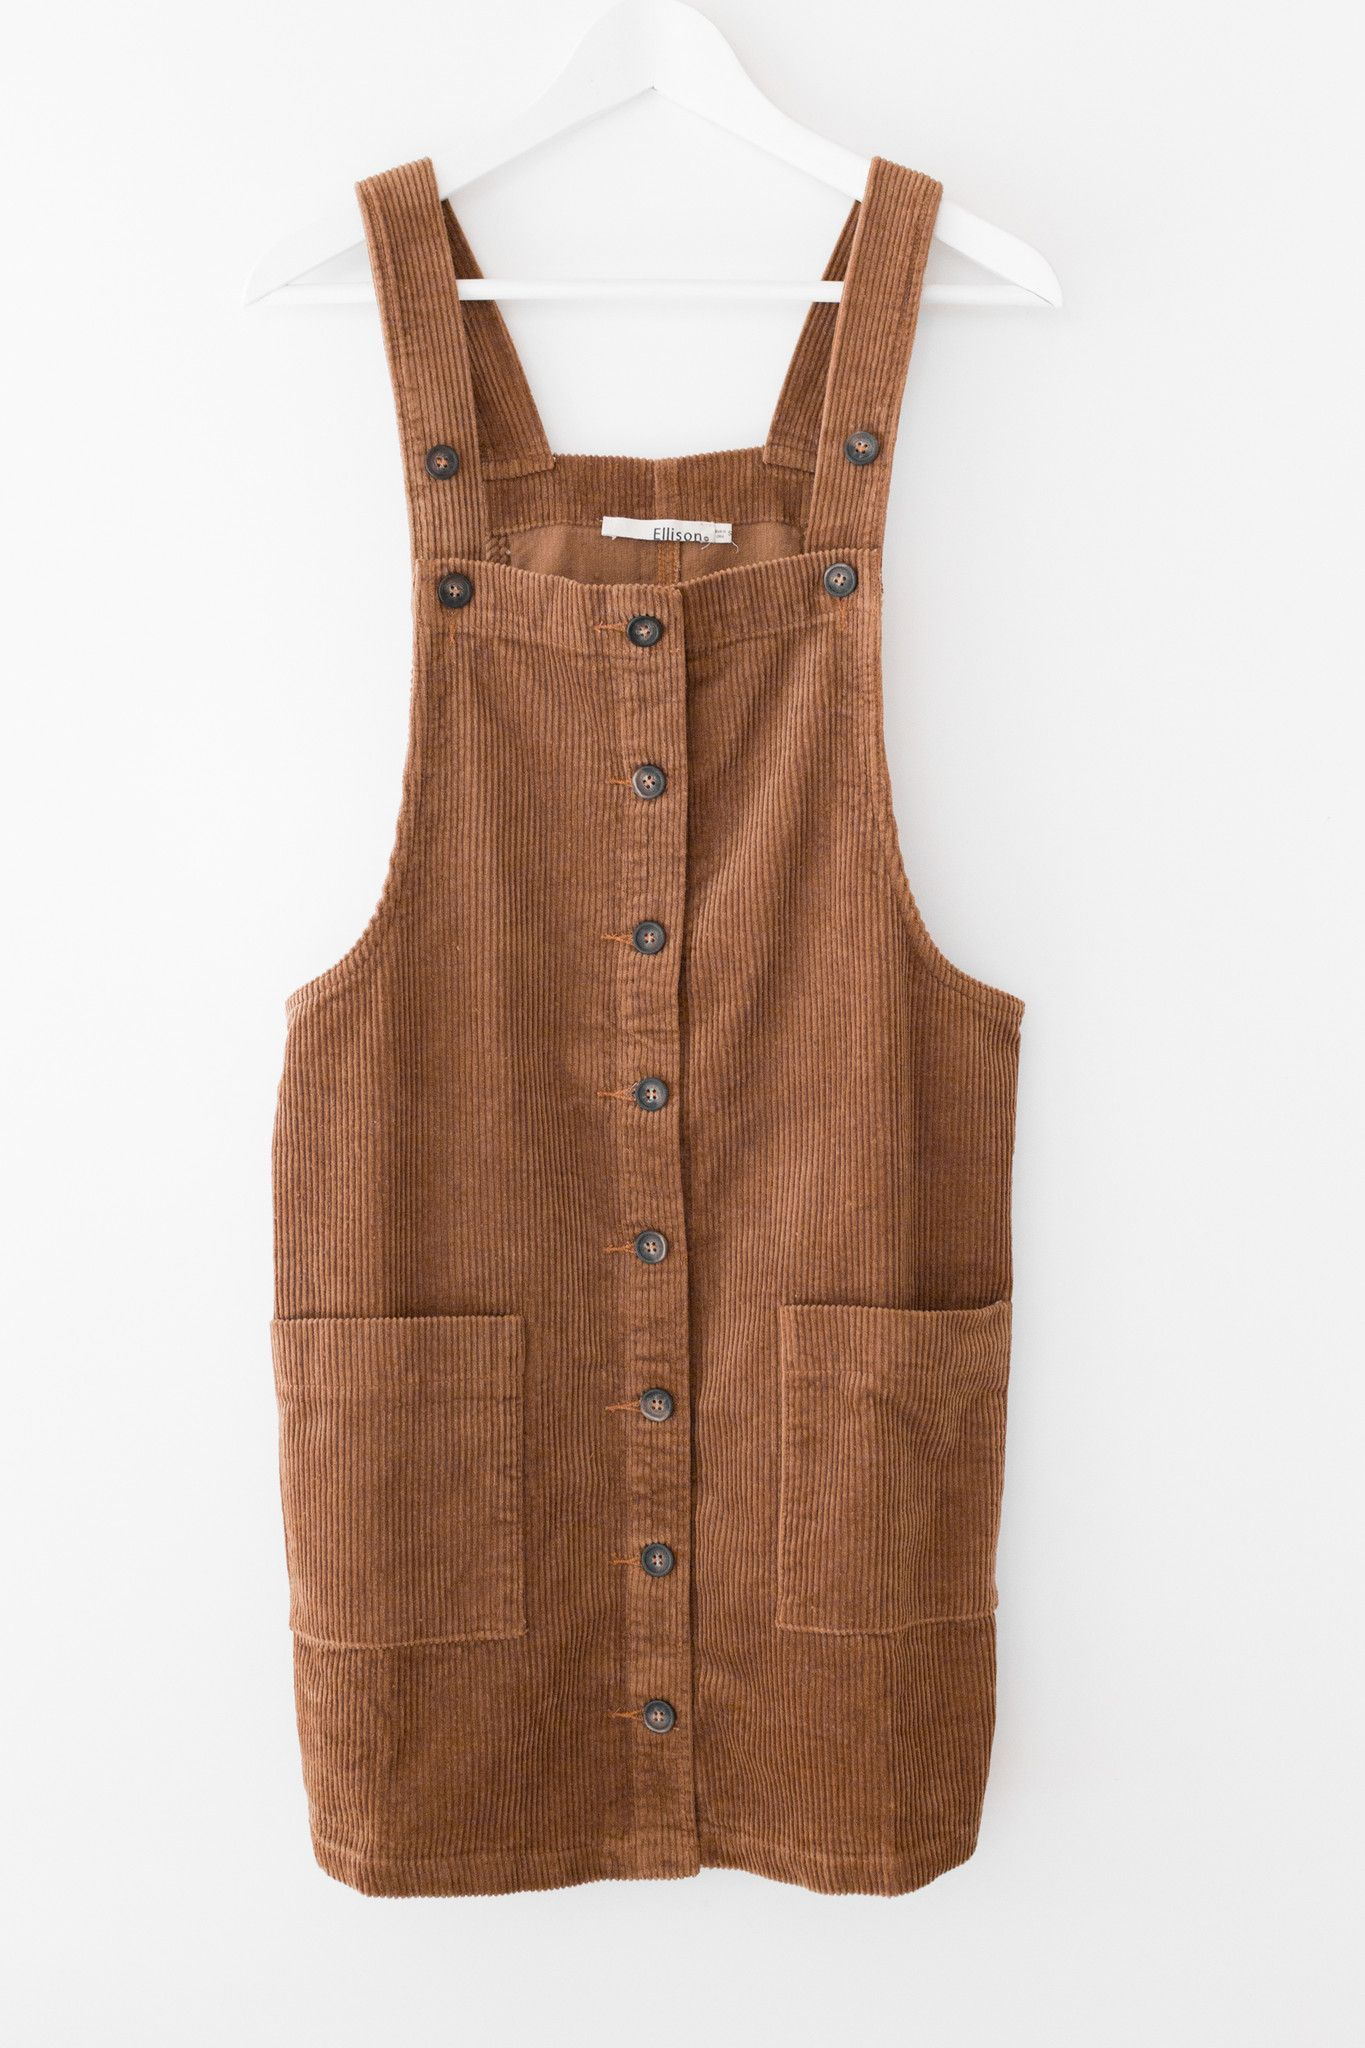 78e88698f5 Soft corduroy dress overalls - Button down front - Large front pockets -  Strap length is adjustable - Loose fitting - 100% Cotton - Imported